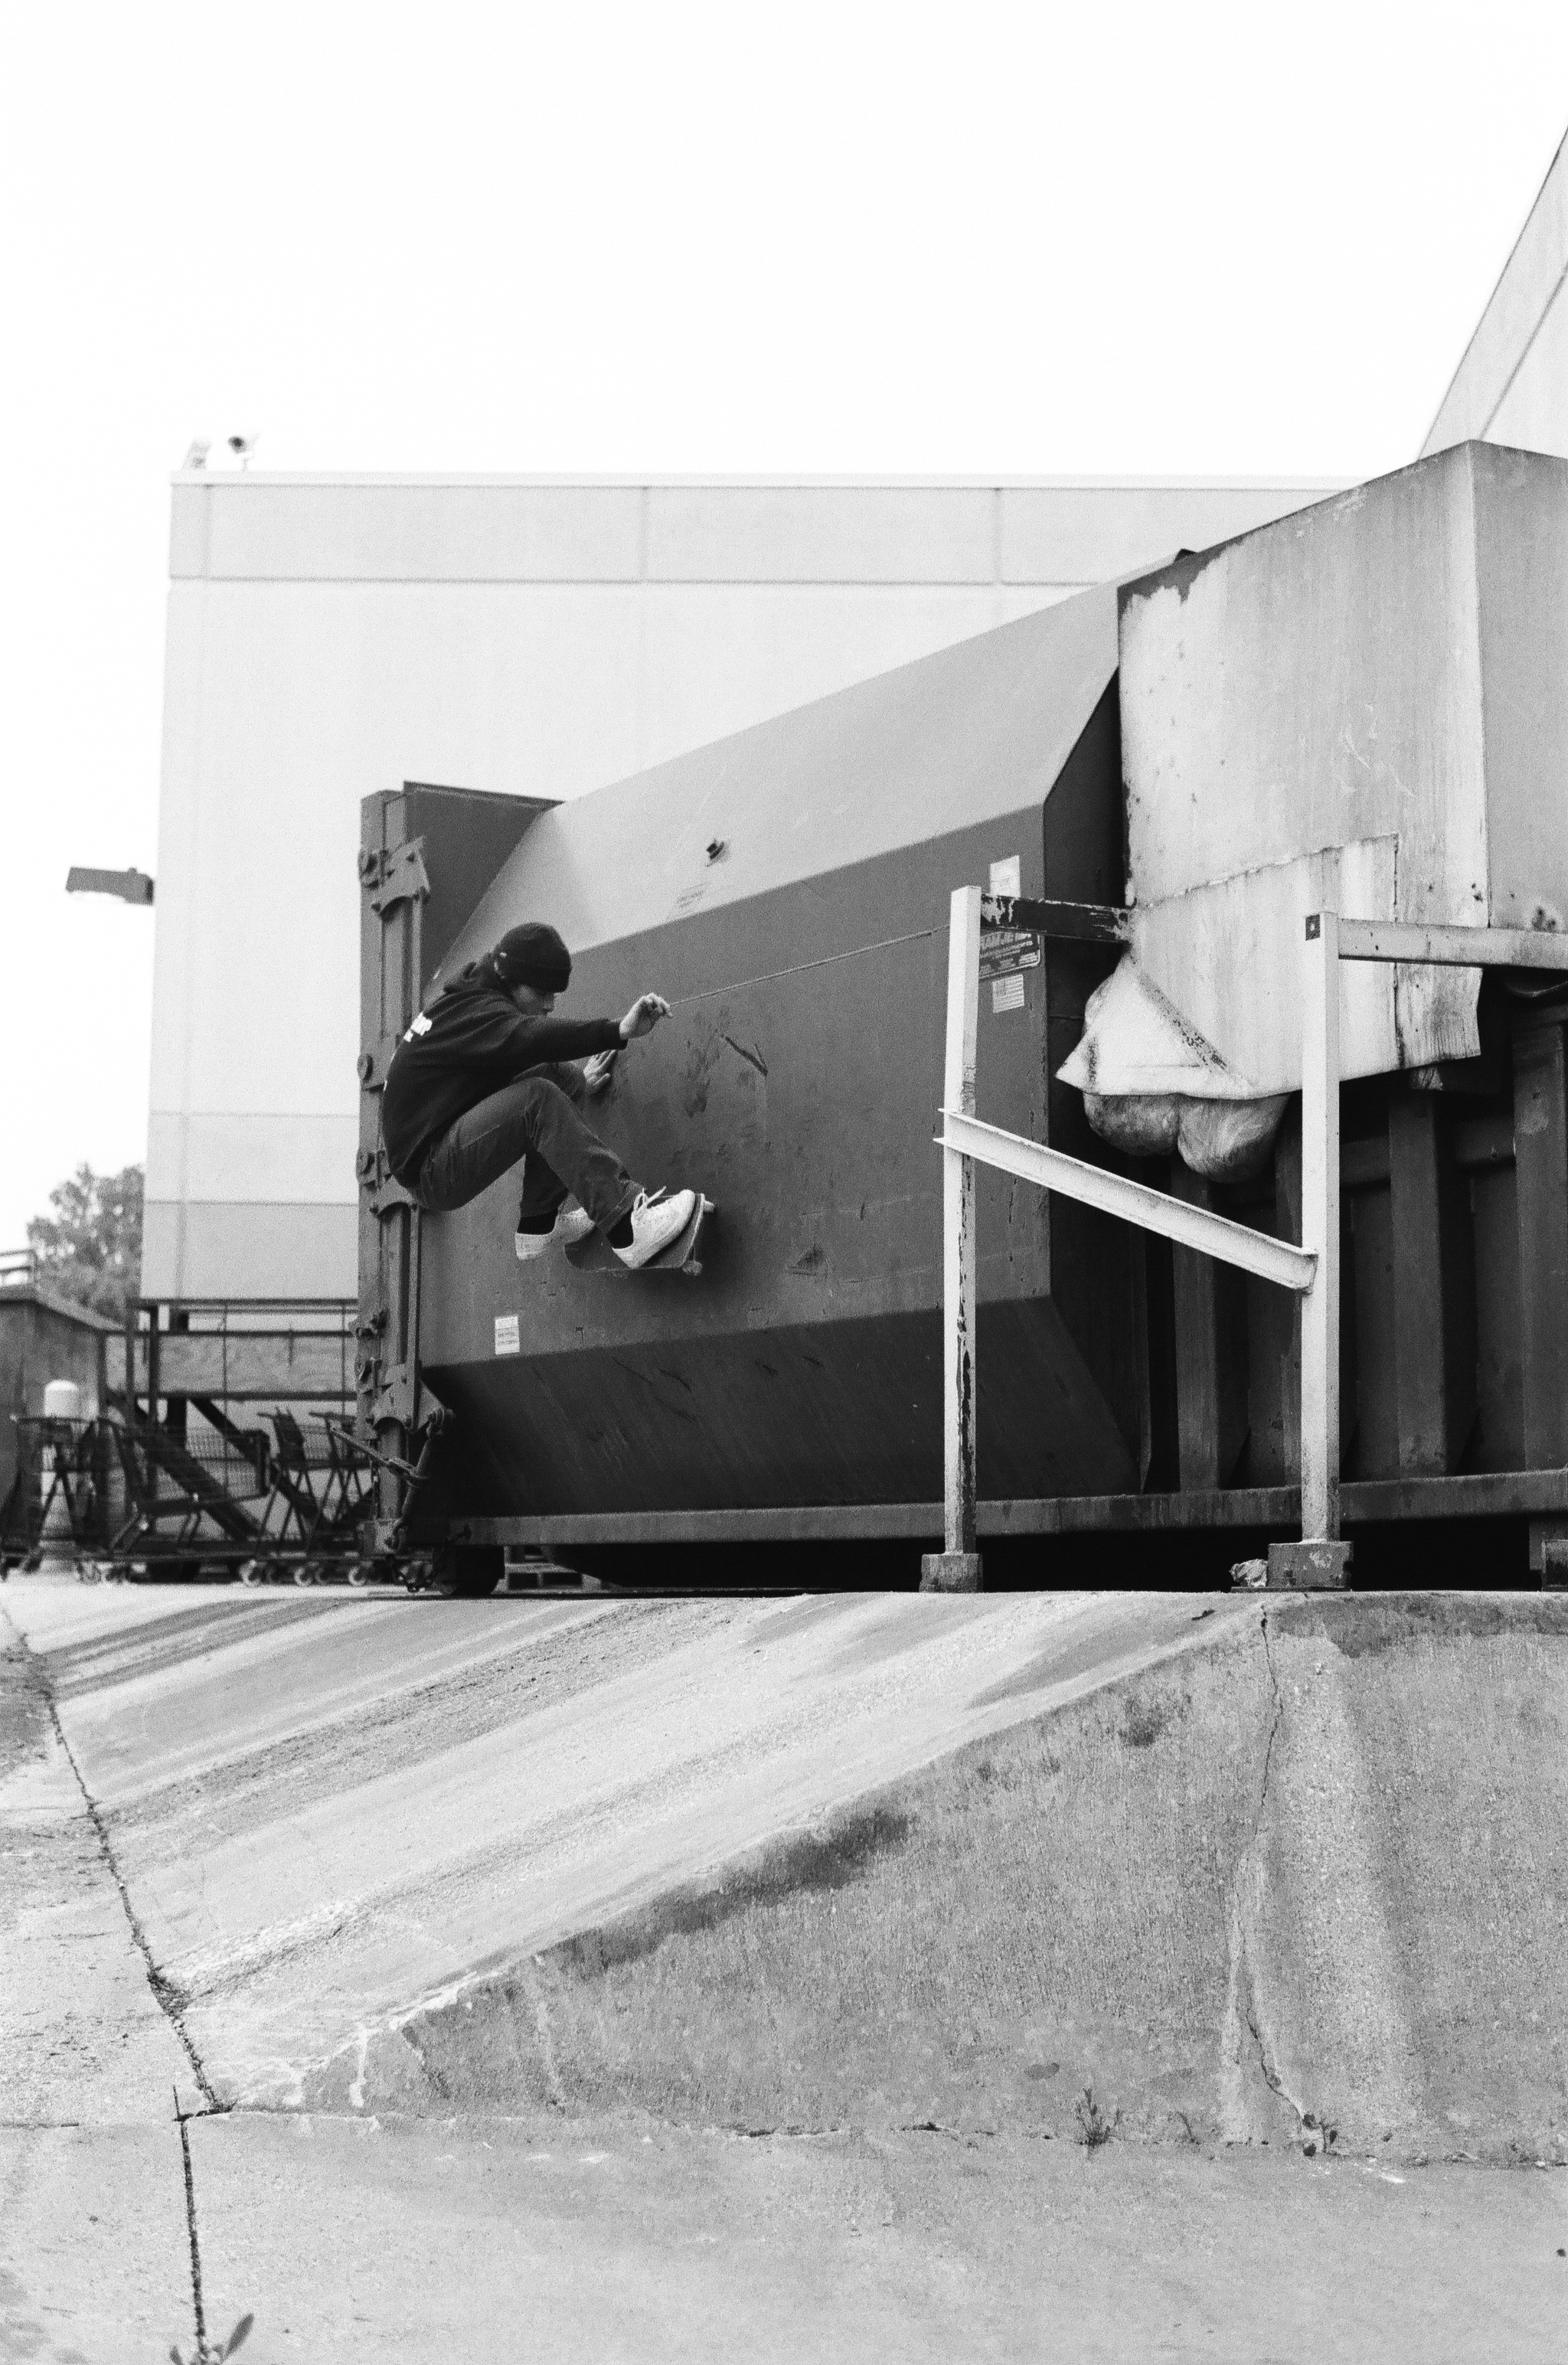 Ollie up to frontside wallride, photo by Kevin Delgrosso